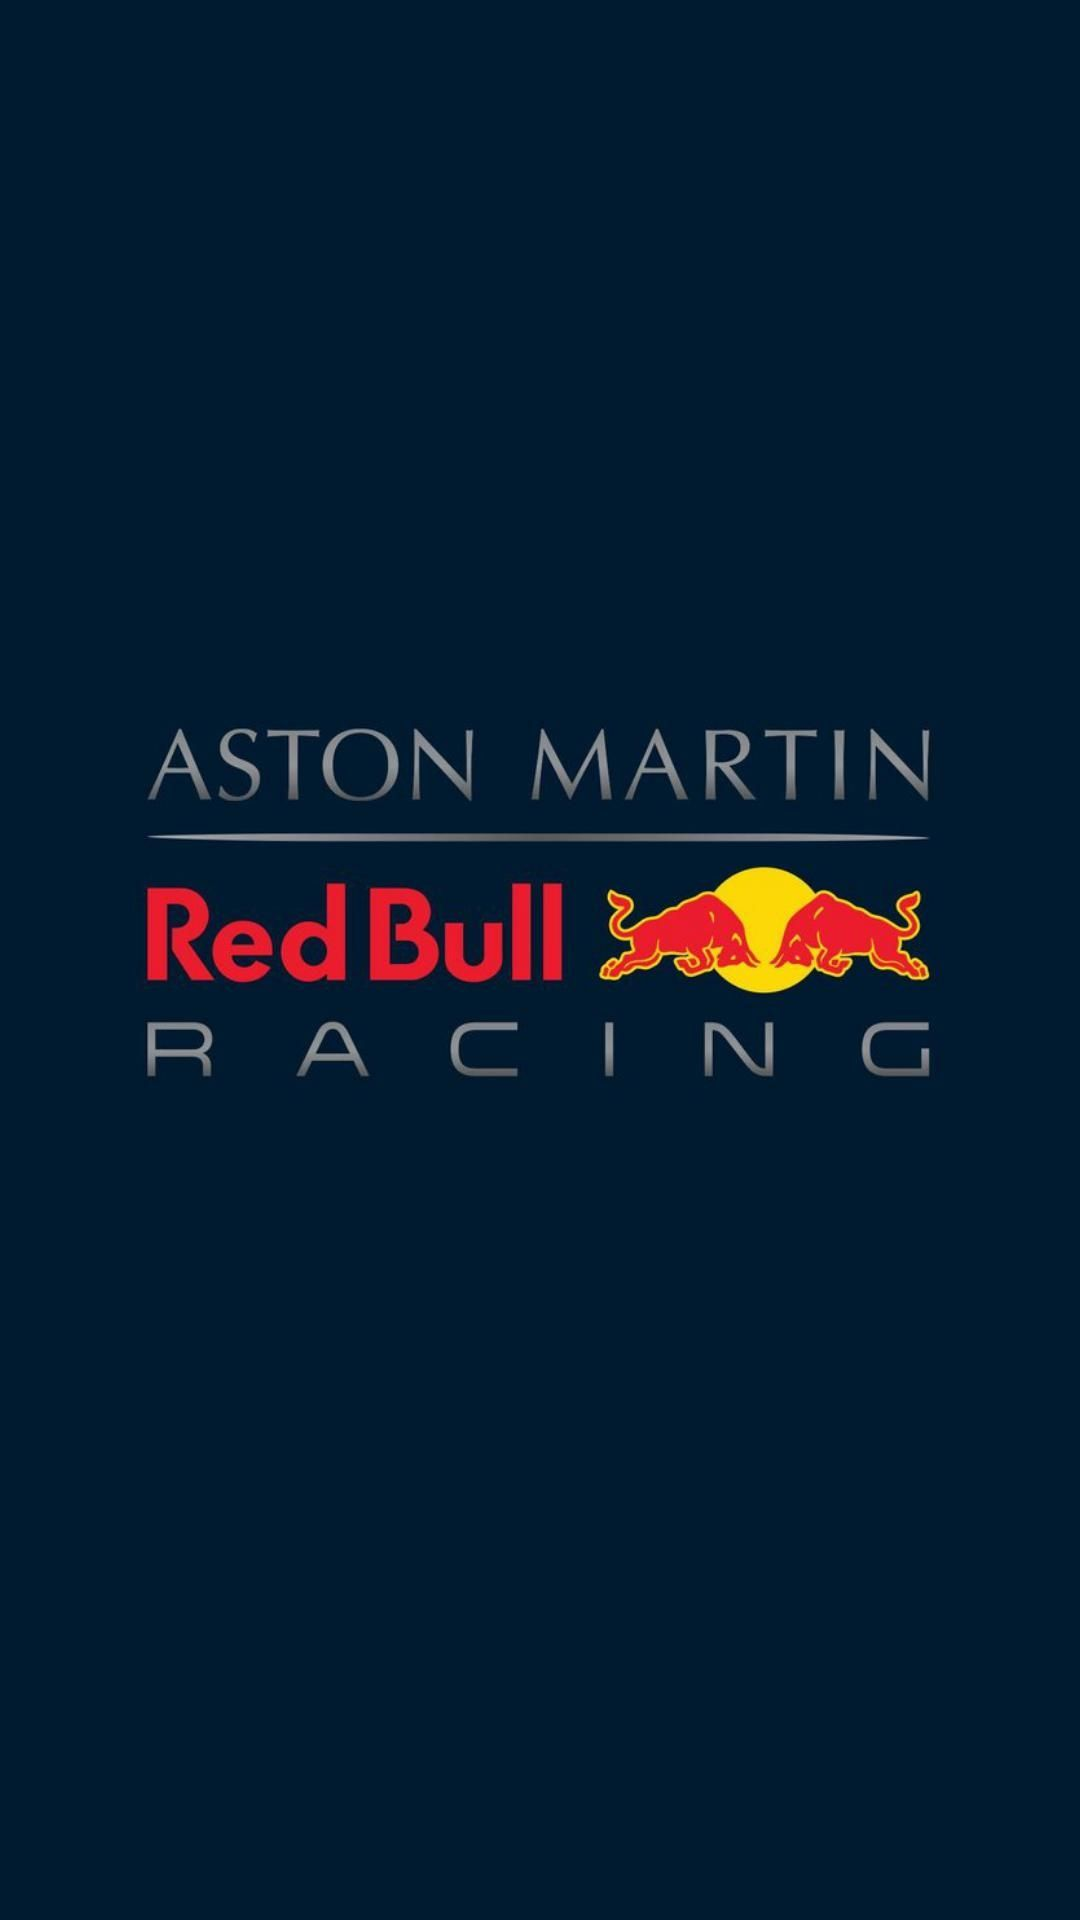 Aston Martin Red Bull Racing blue wallpaper logo middle ...